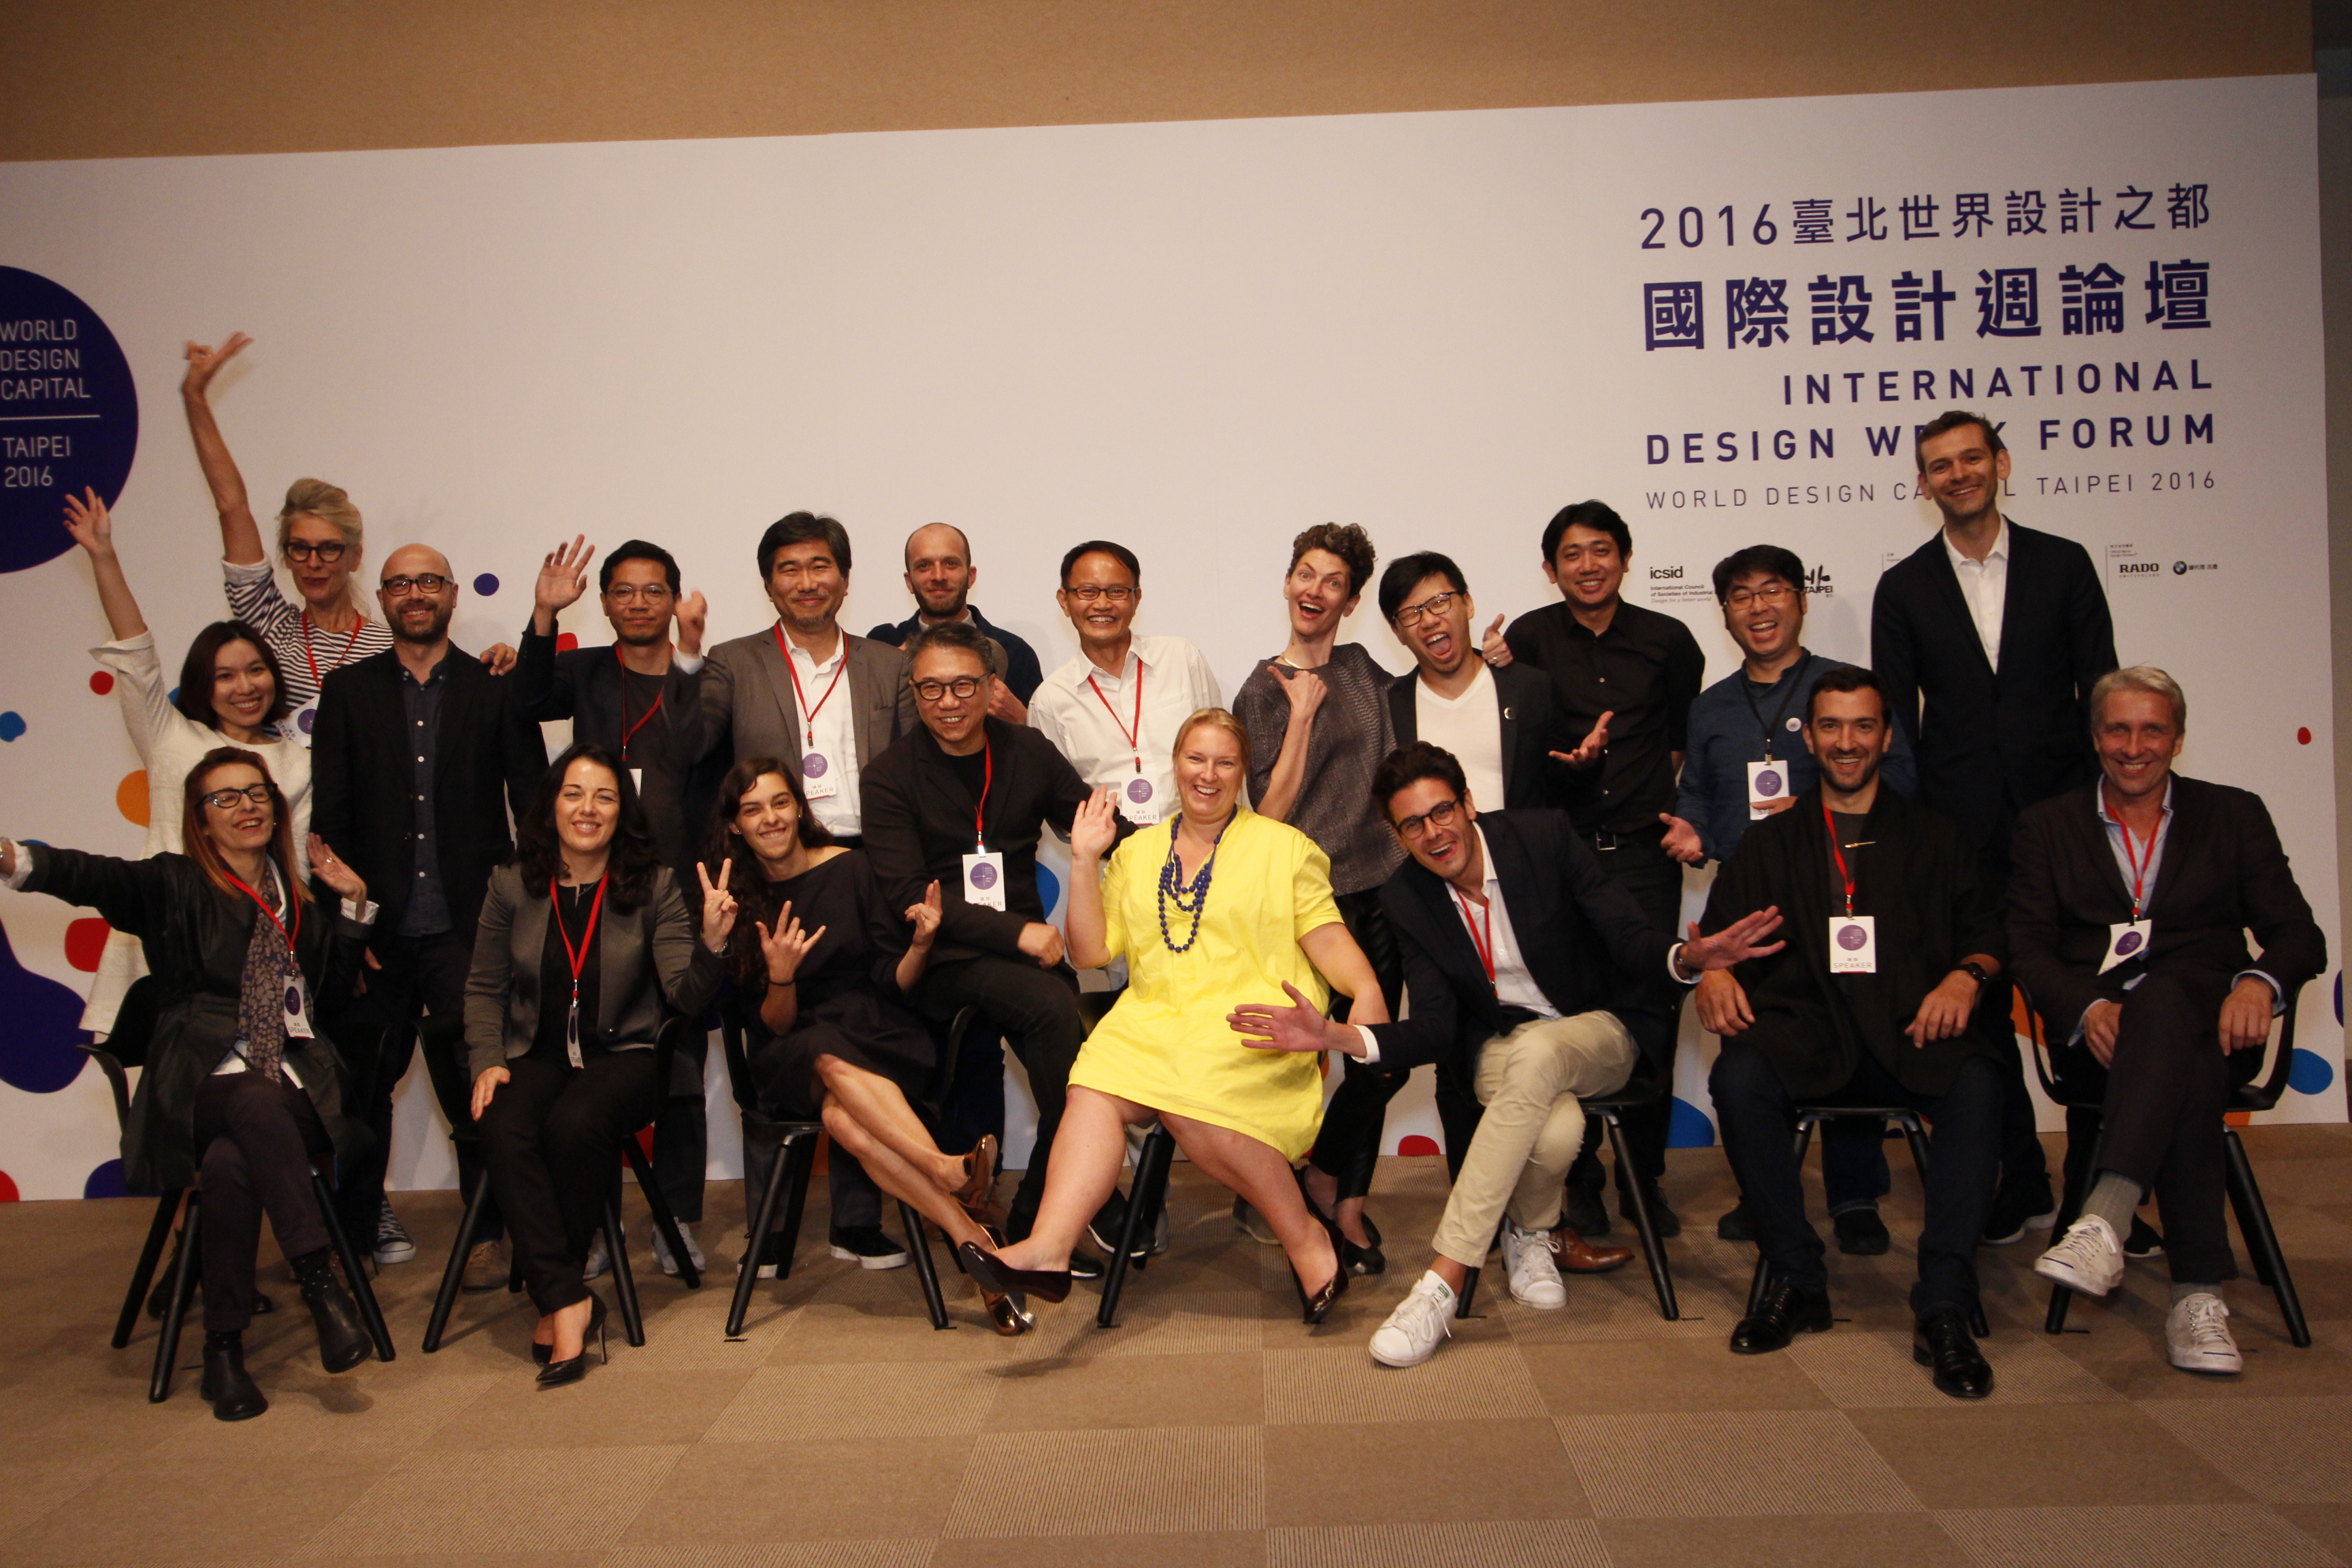 2016.10.18 The International Design Week Forum